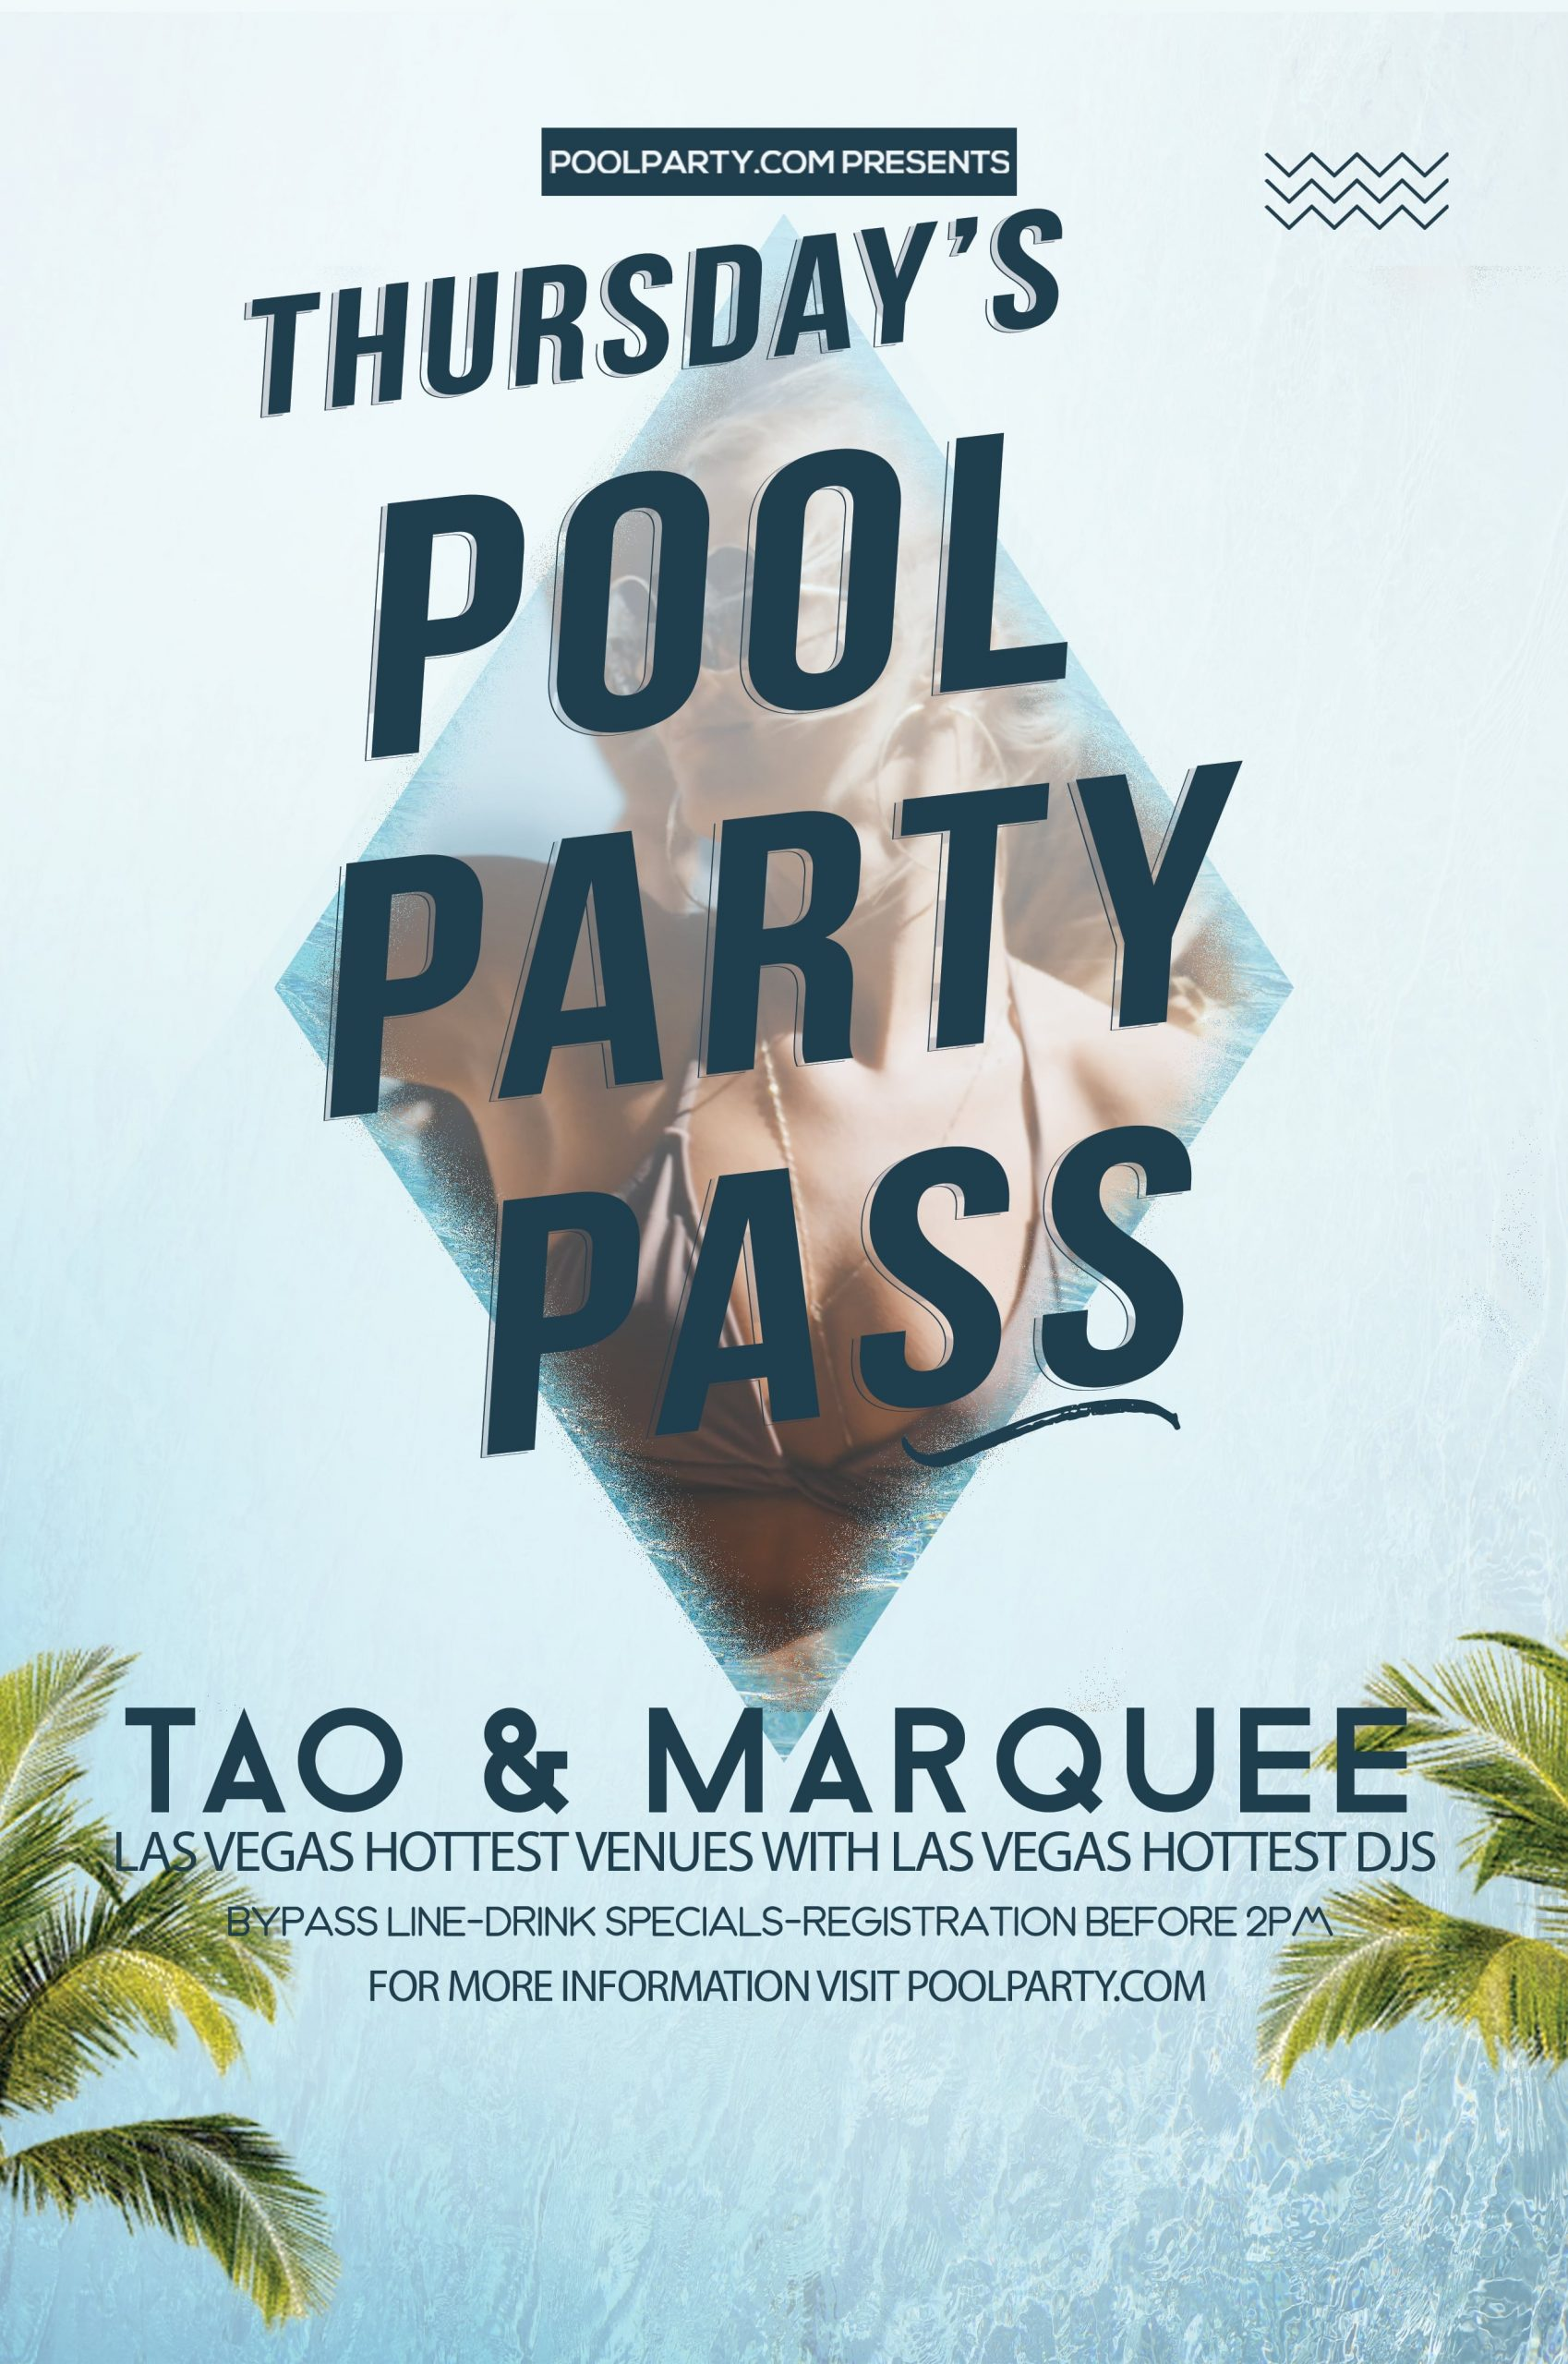 Thursday's Las Vegas Pool Party Pass (June 25th 2020)*Tao & Marquee VIP Pass*